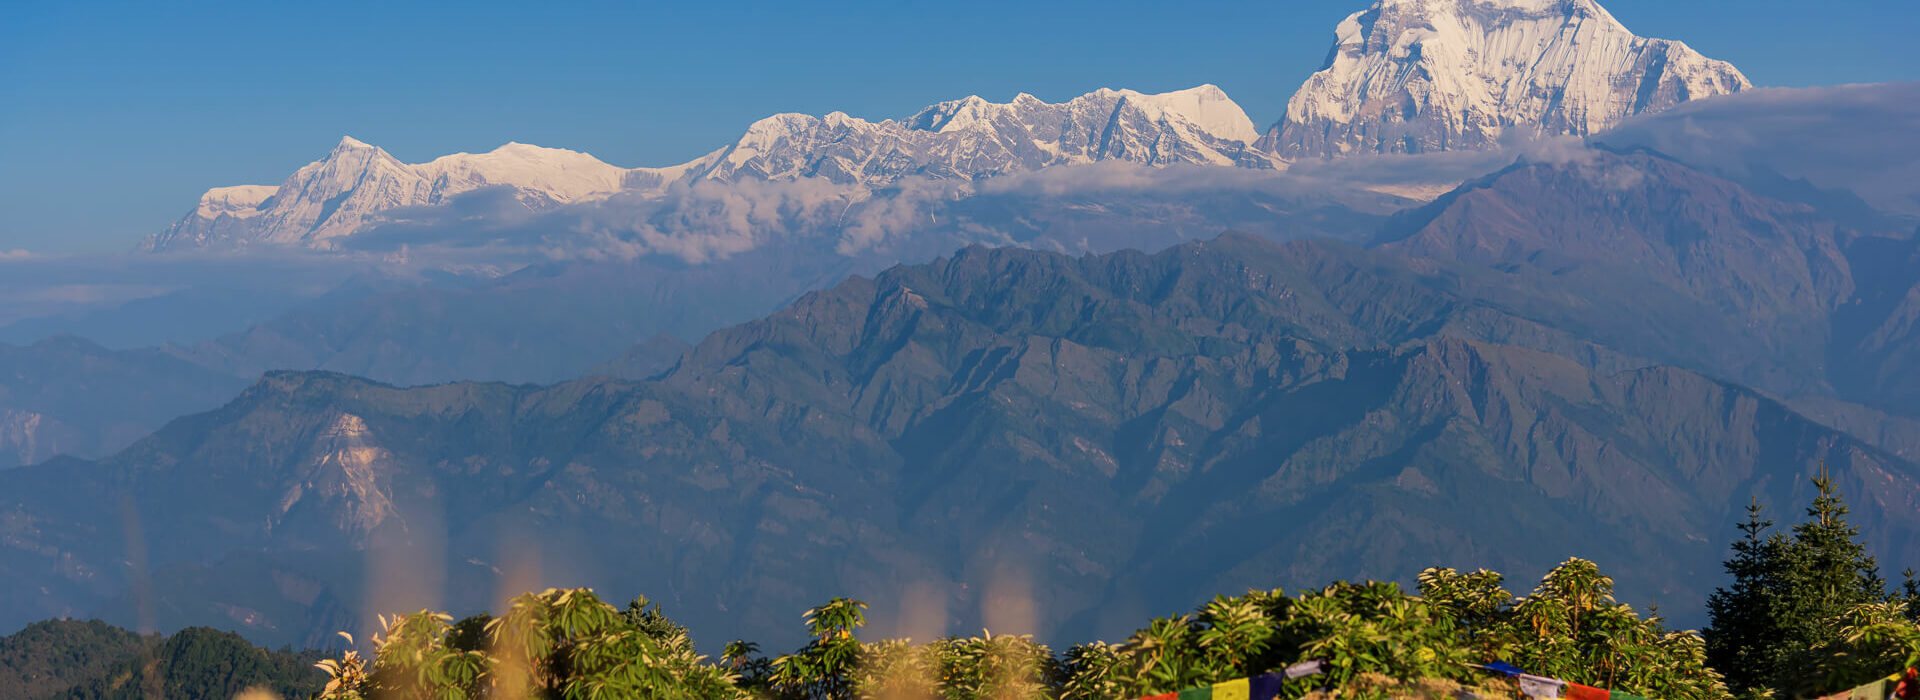 Annapurna Base Camp with Earth's Edge 6